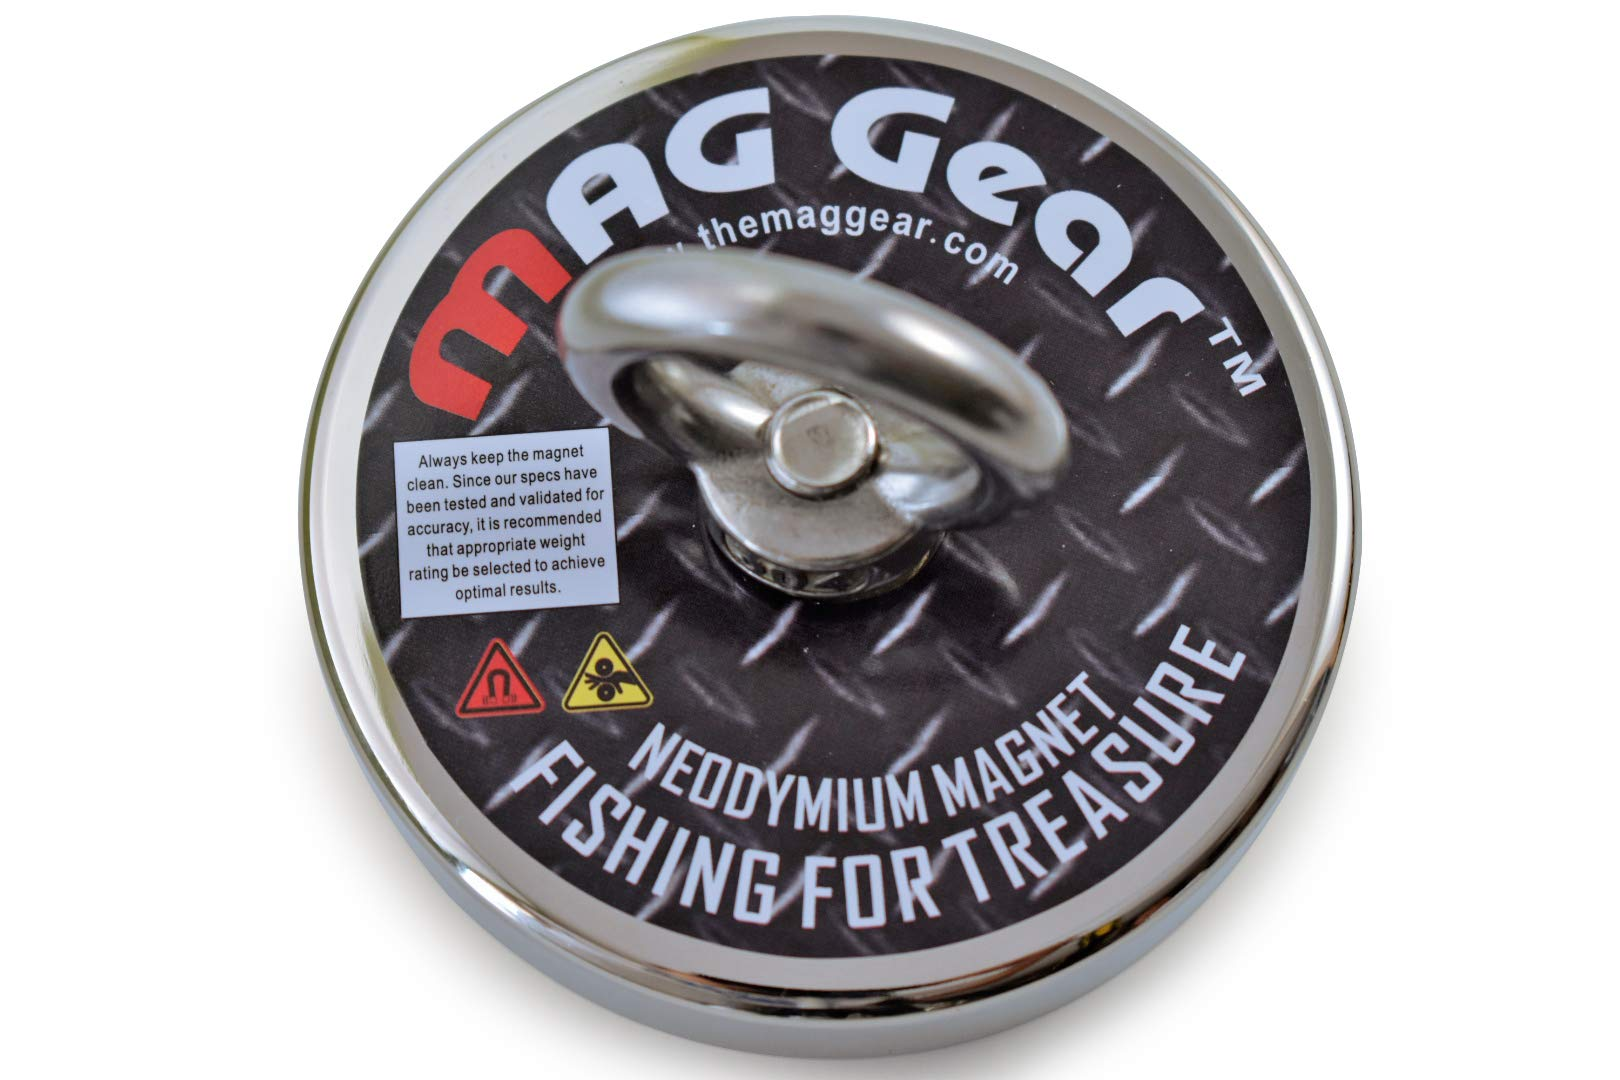 Salvage Magnet by MAG Gear 890lb Pulling Force Super Strong Fishing Magnets 3.54inches-90mm Diameter Neodymium Fishing Magnet for Retrieving and Magnet Fishing | 0.7inch - 17.8mm Thick Large Magnets